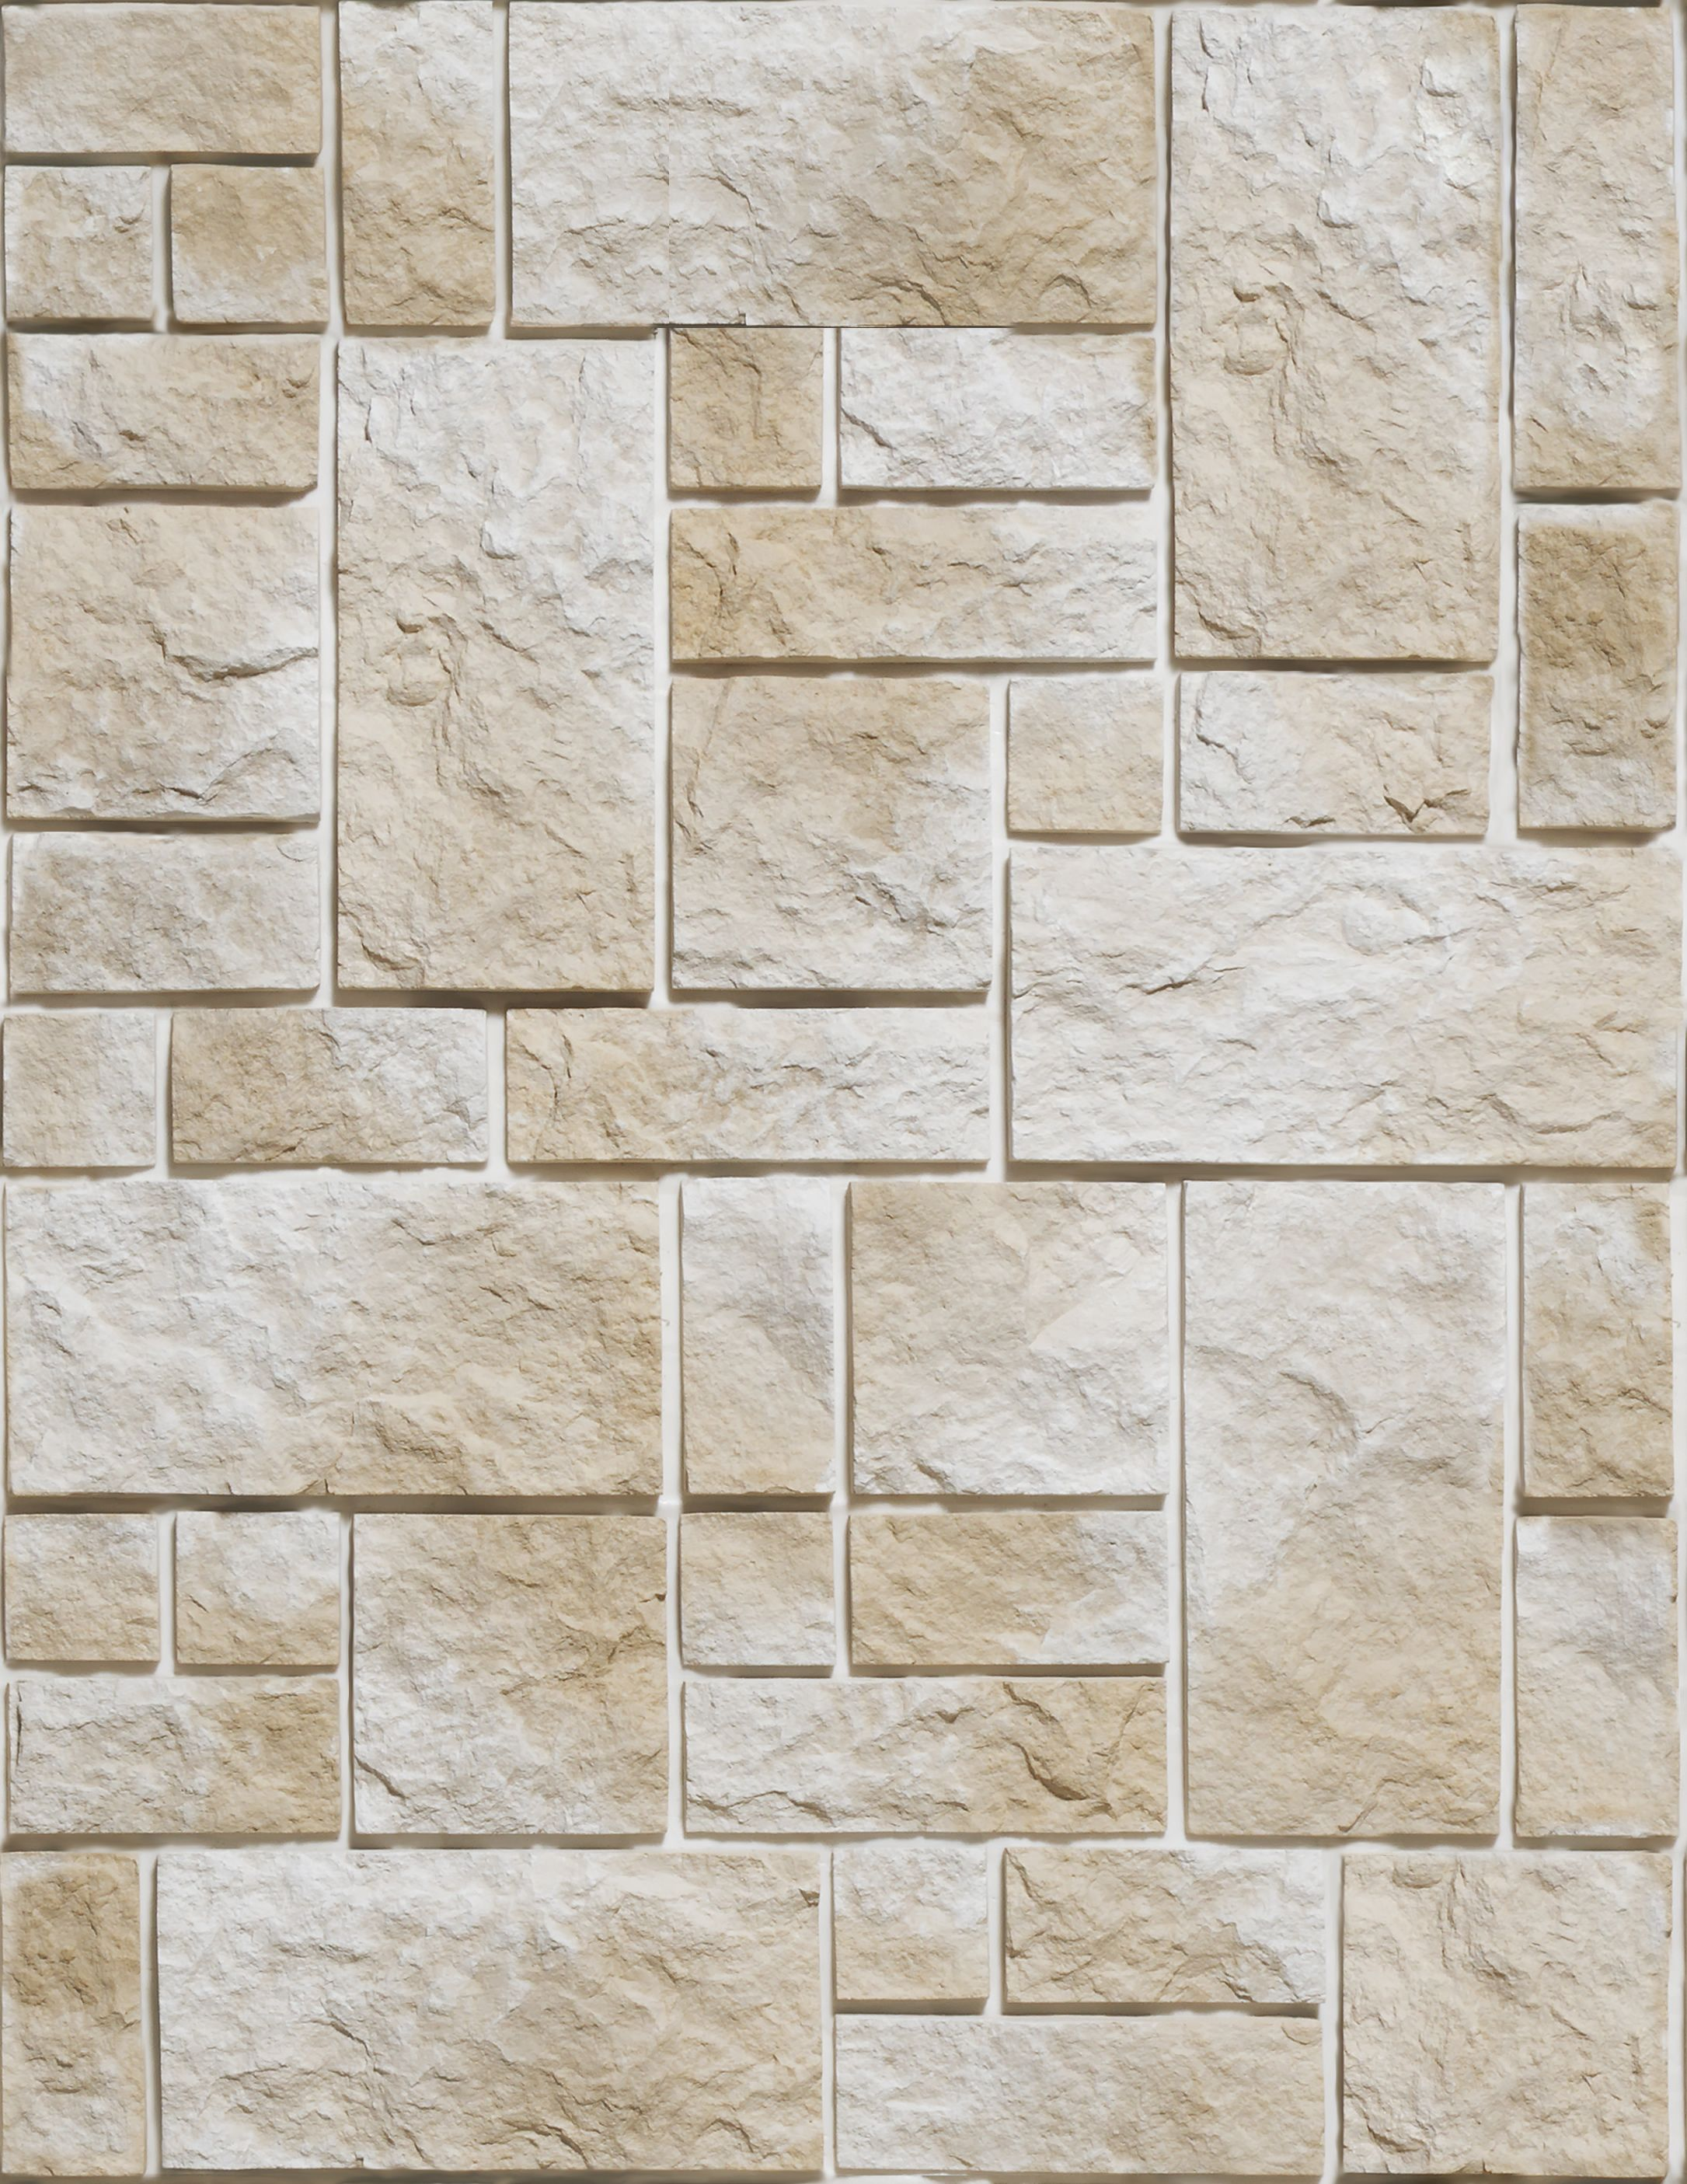 Wall Texture Designs For Bathroom : Stone hewn tile texture wall download photo